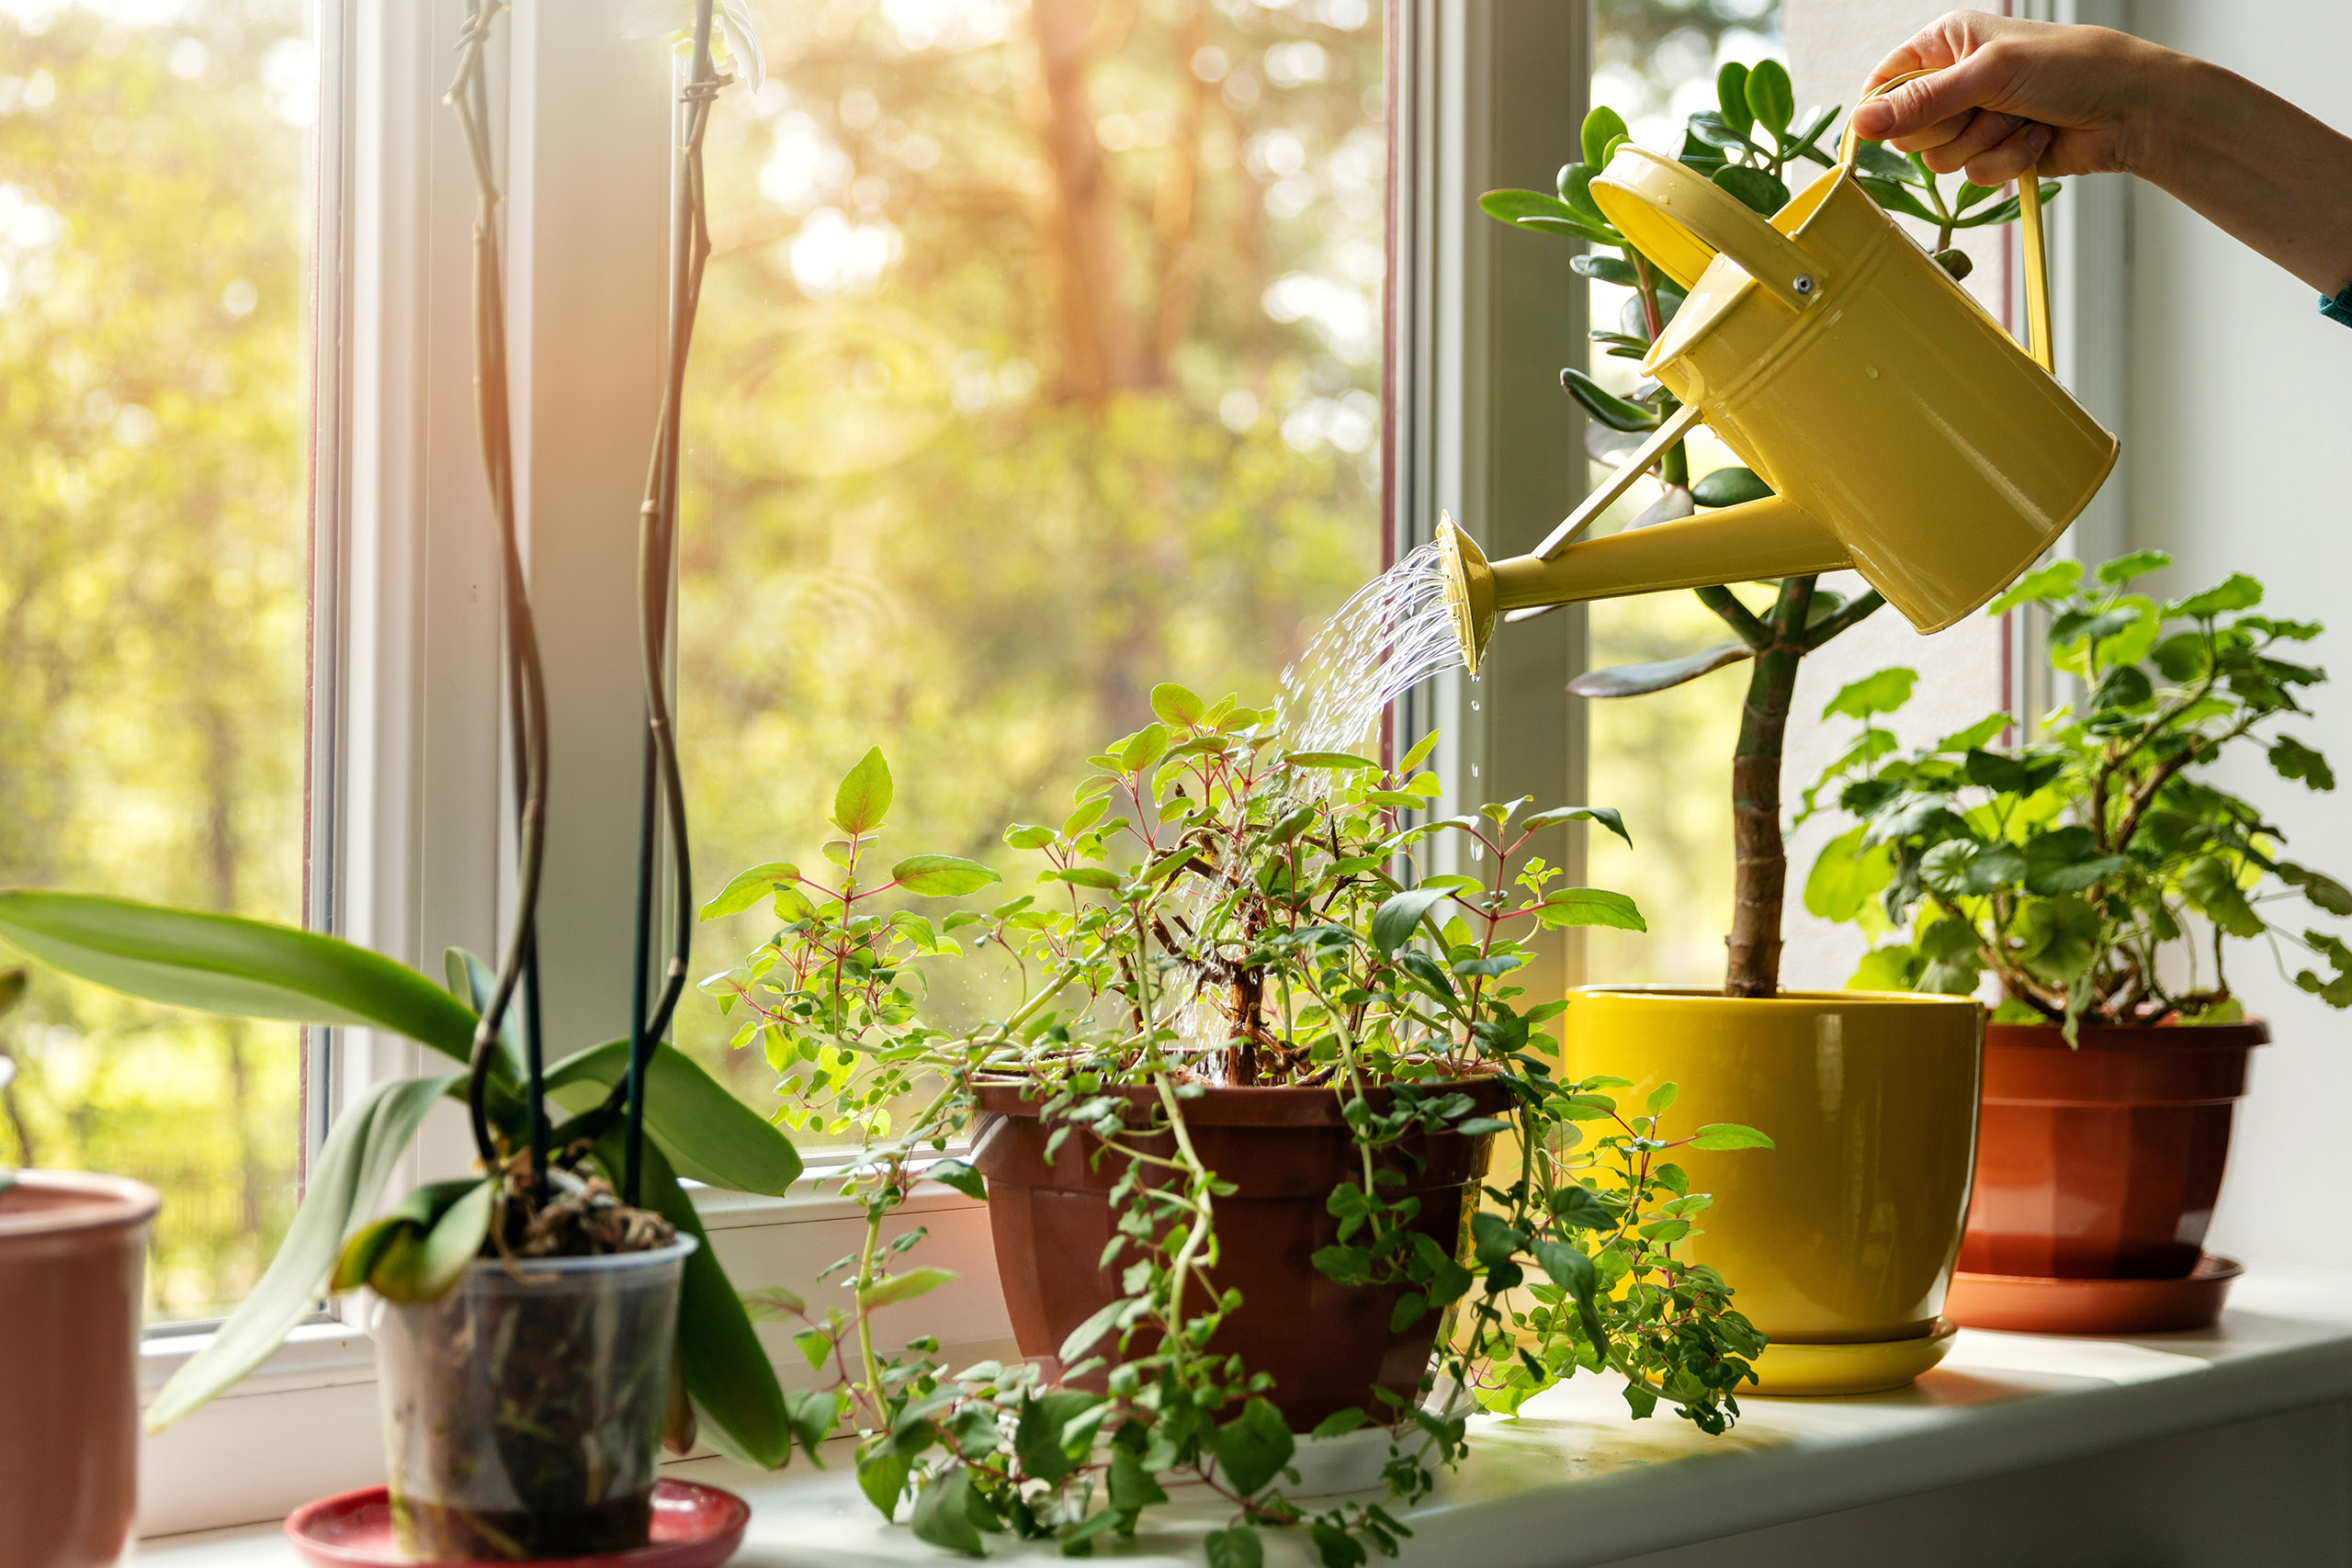 persons hand watering plants on window ledge